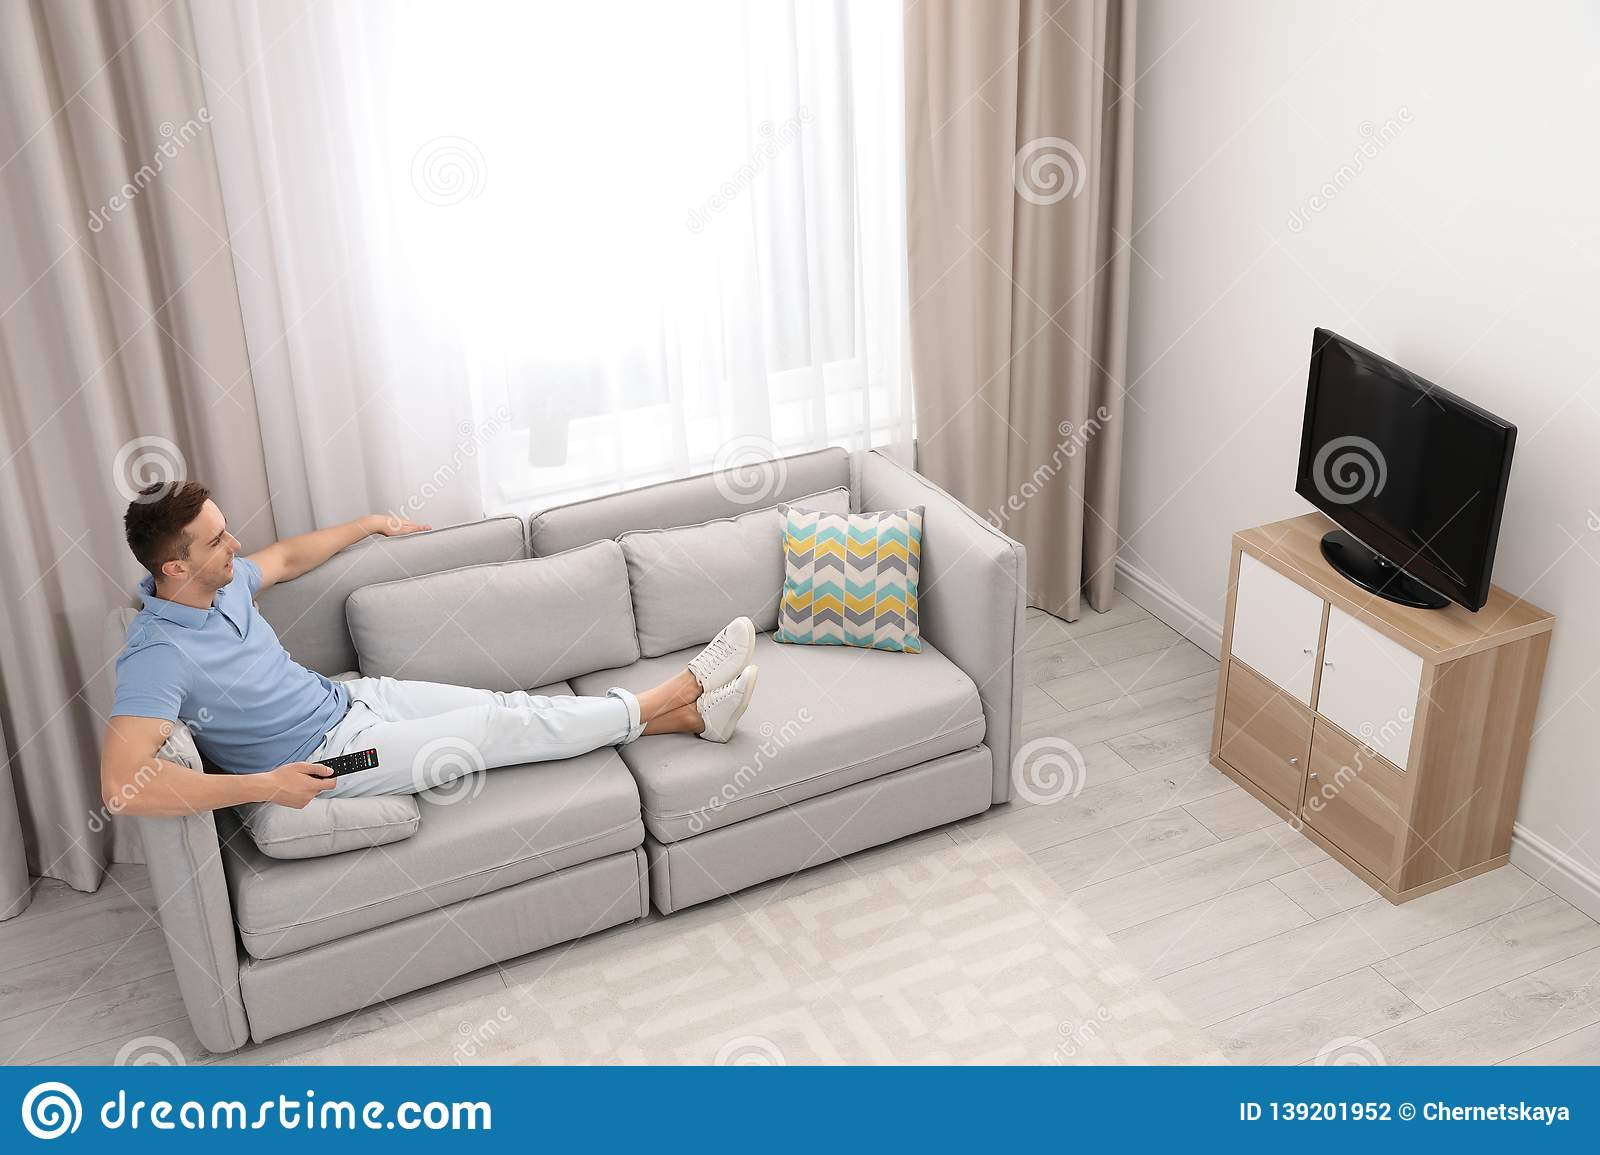 Man Watching Tv On Sofa In Living Room View From Above Stock Photo